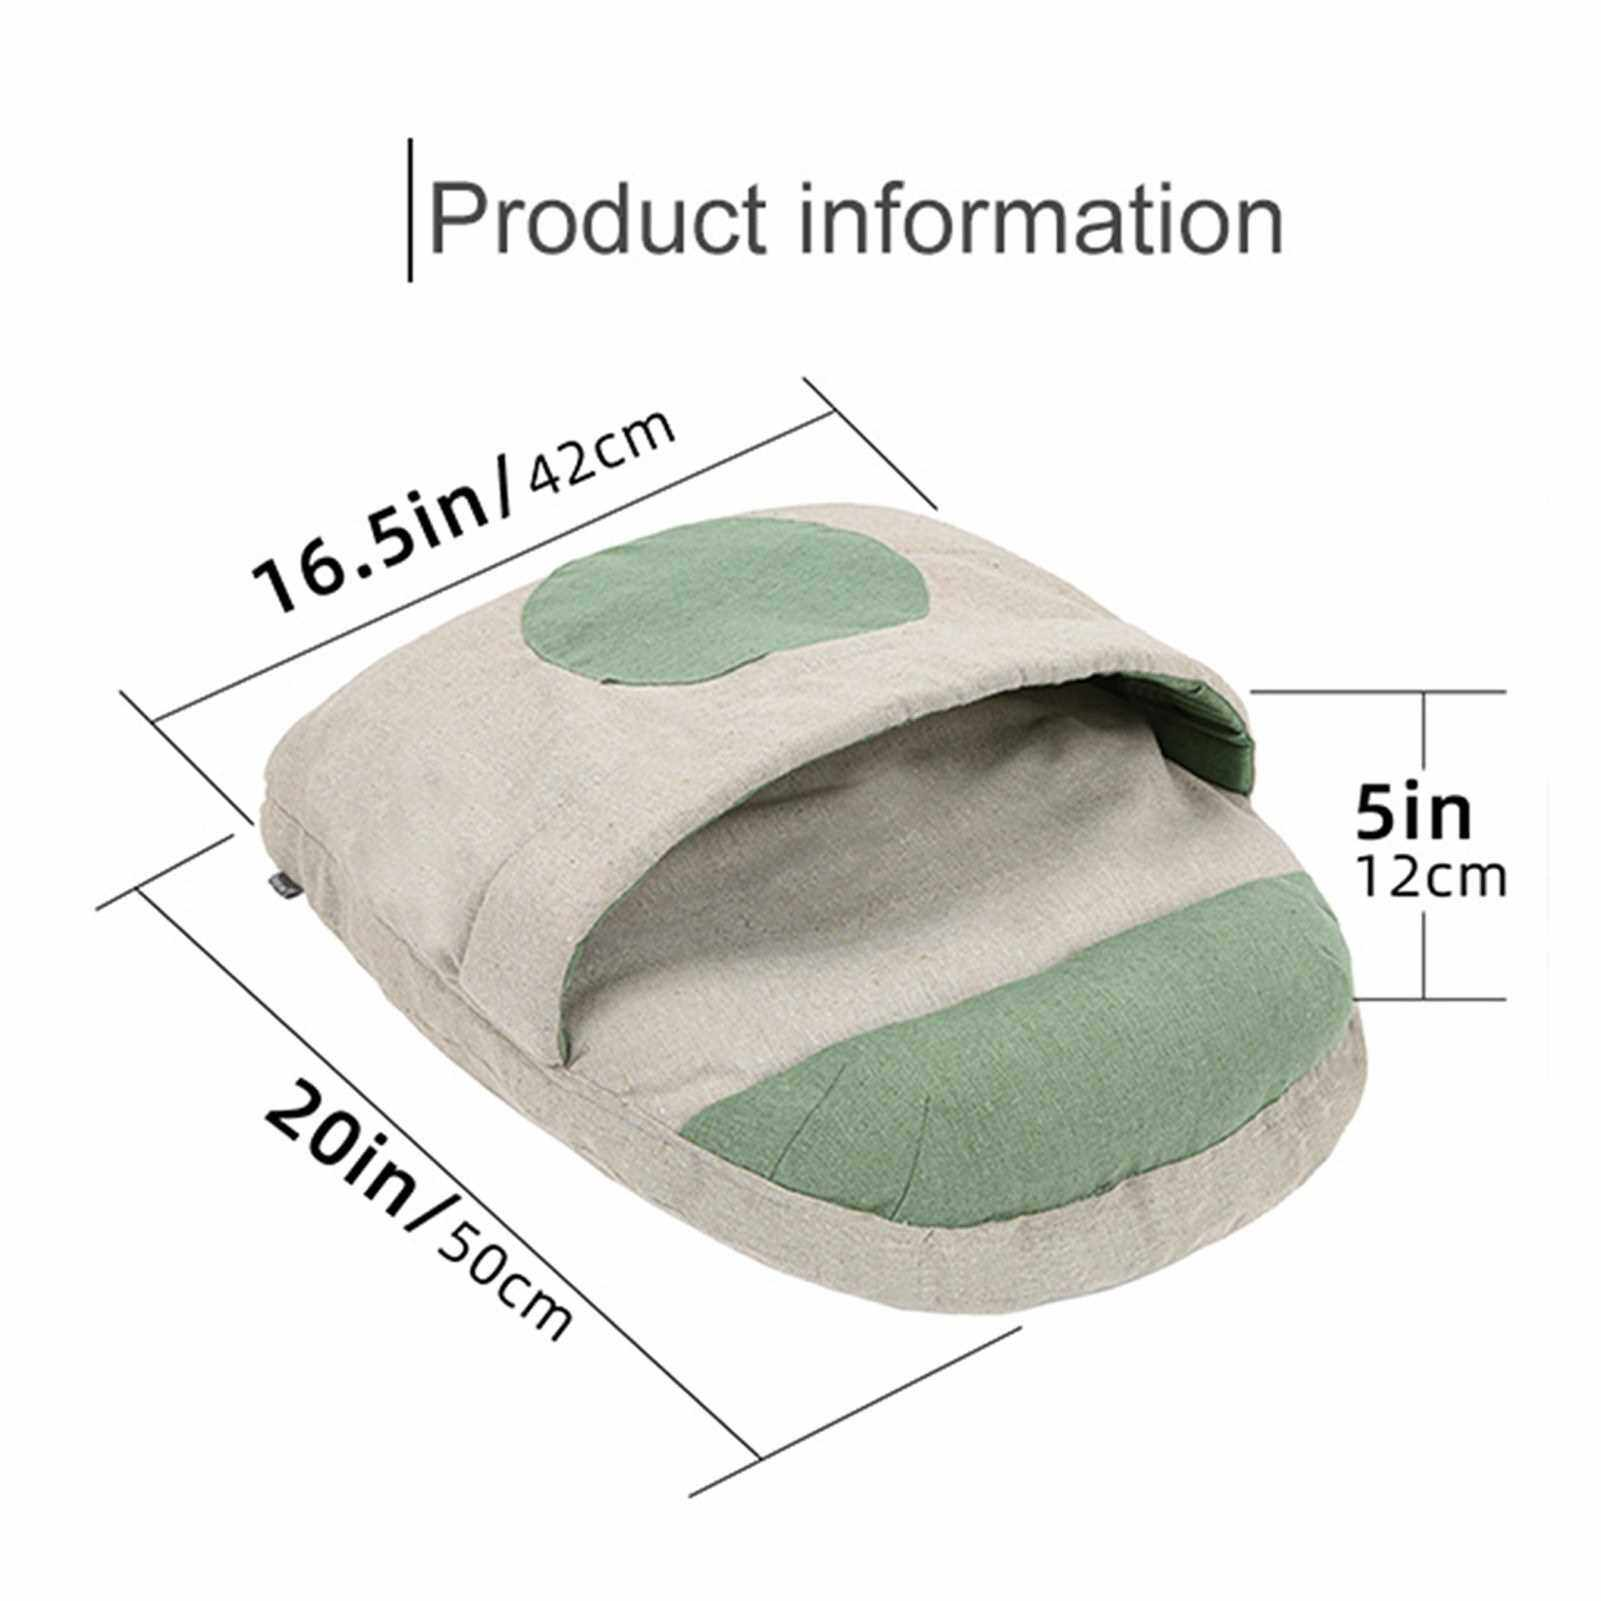 Cat House Cat Home Cat Bed for Small Cats House for Small Pets Cat Cave Bed Cat Sleeping Bed Cave Bed for Small Pets (Beige)